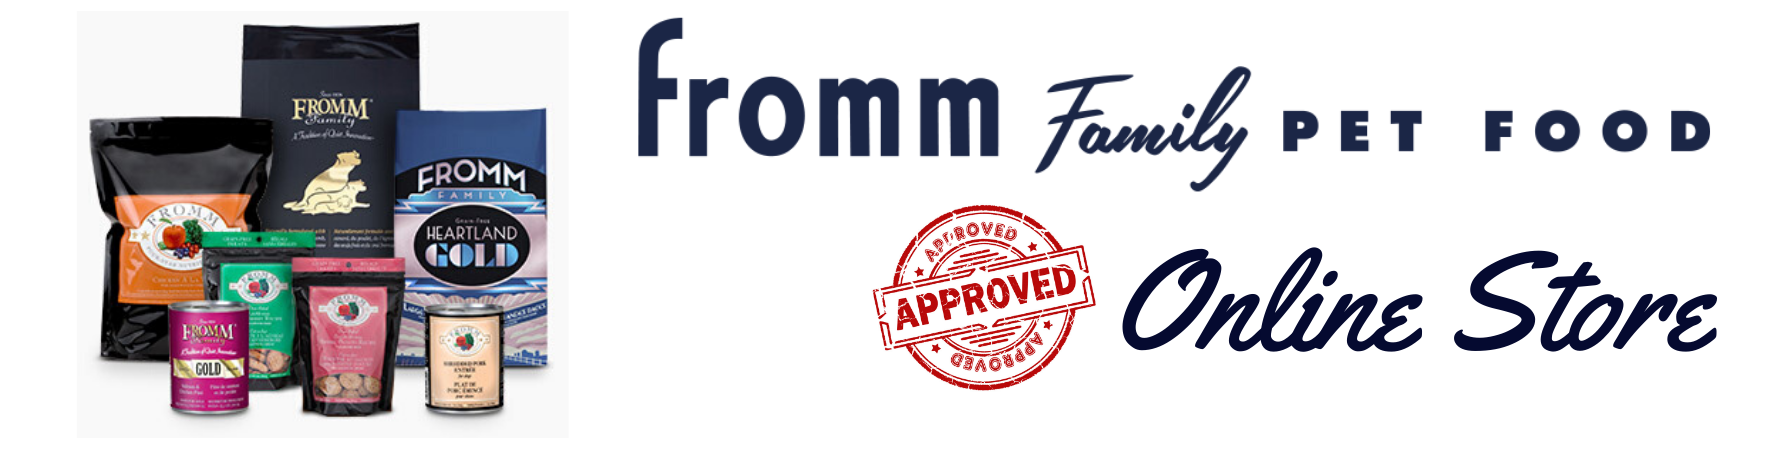 Fromm Family Pet Food for dogs and cats Made in USA Authorized Online Retailer